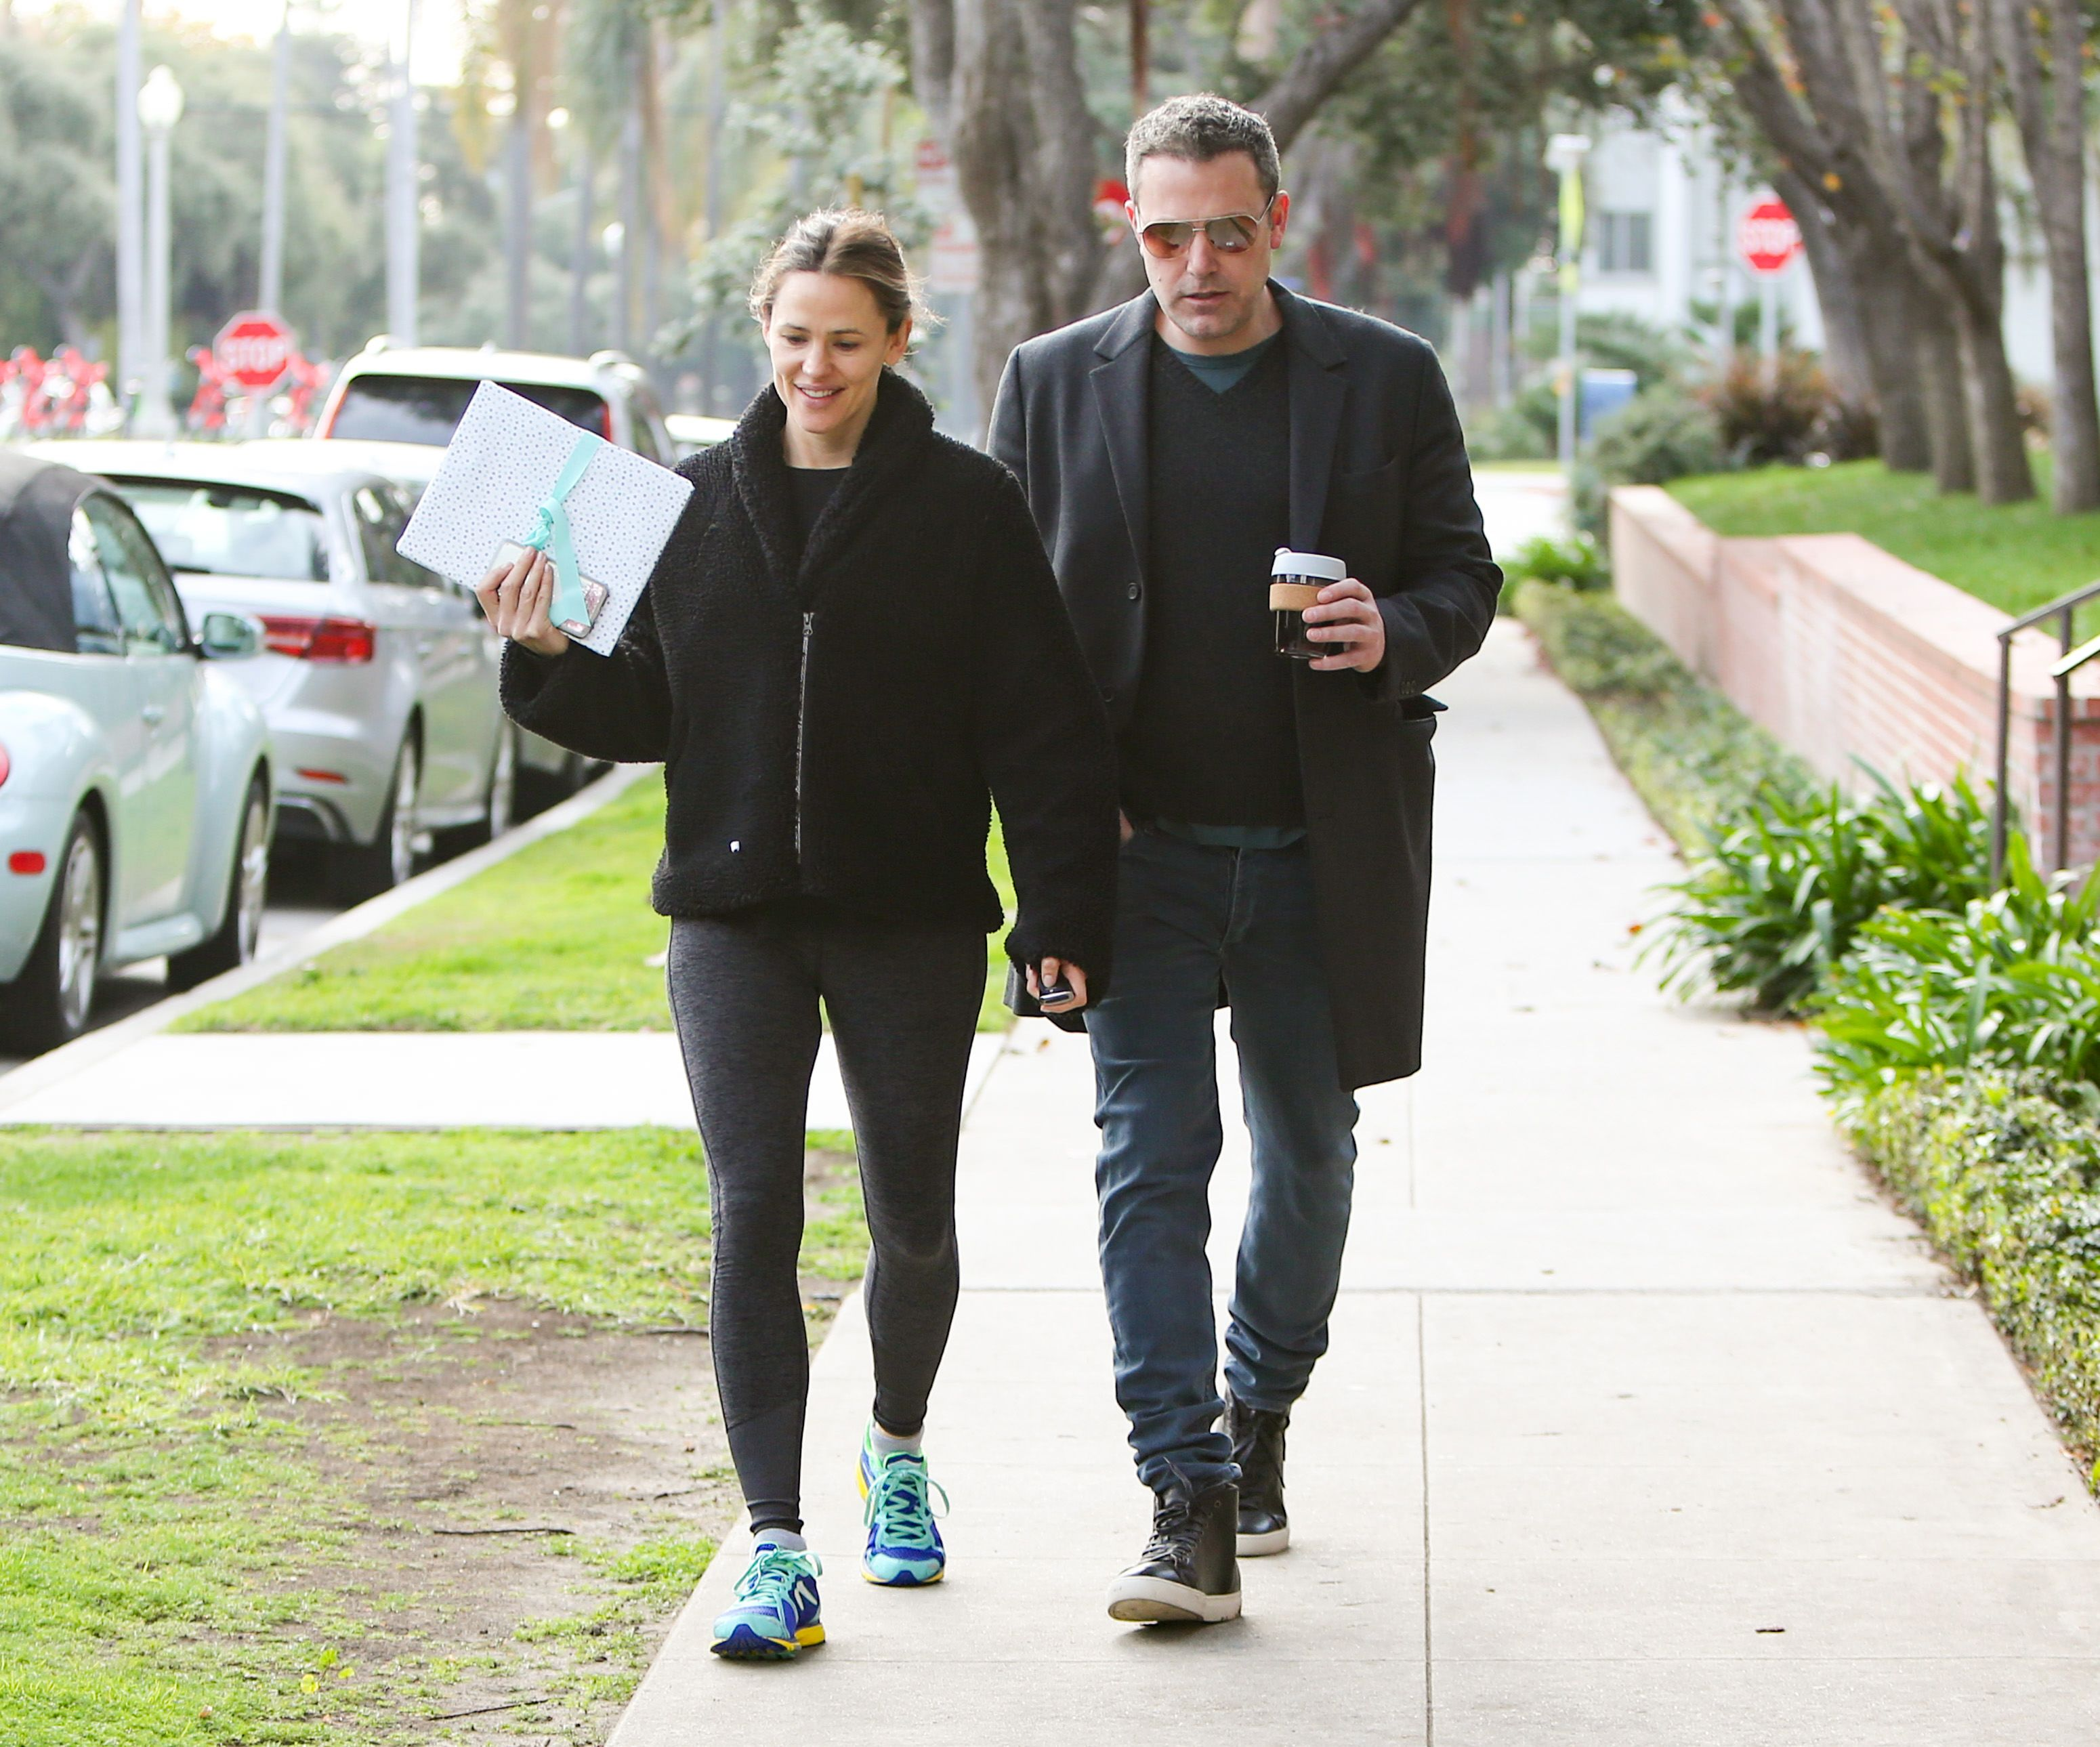 Jennifer Garner und Ben Affleck werden am 27. Februar 2019 in Los Angeles, Kalifornien, gesehen. | Quelle: Getty Images